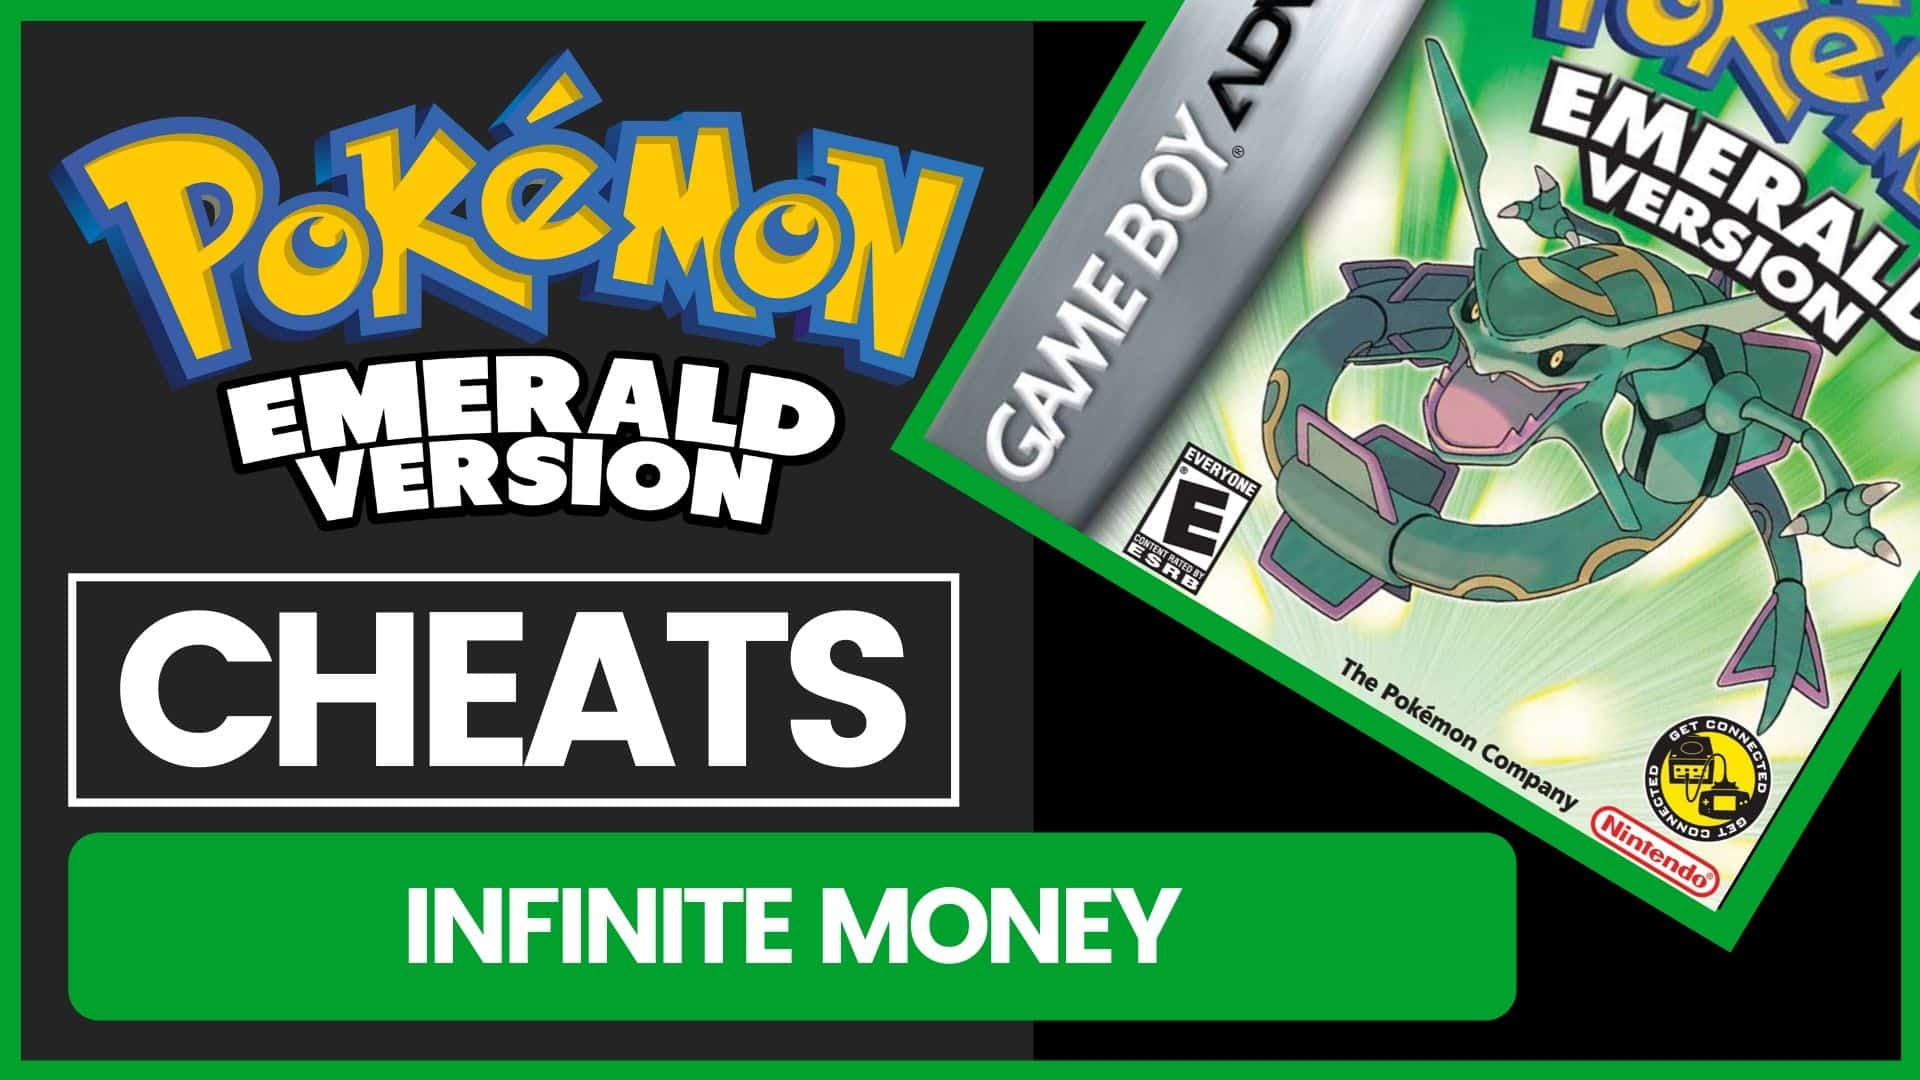 Pokemon Emerald Cheats - Infinite Money